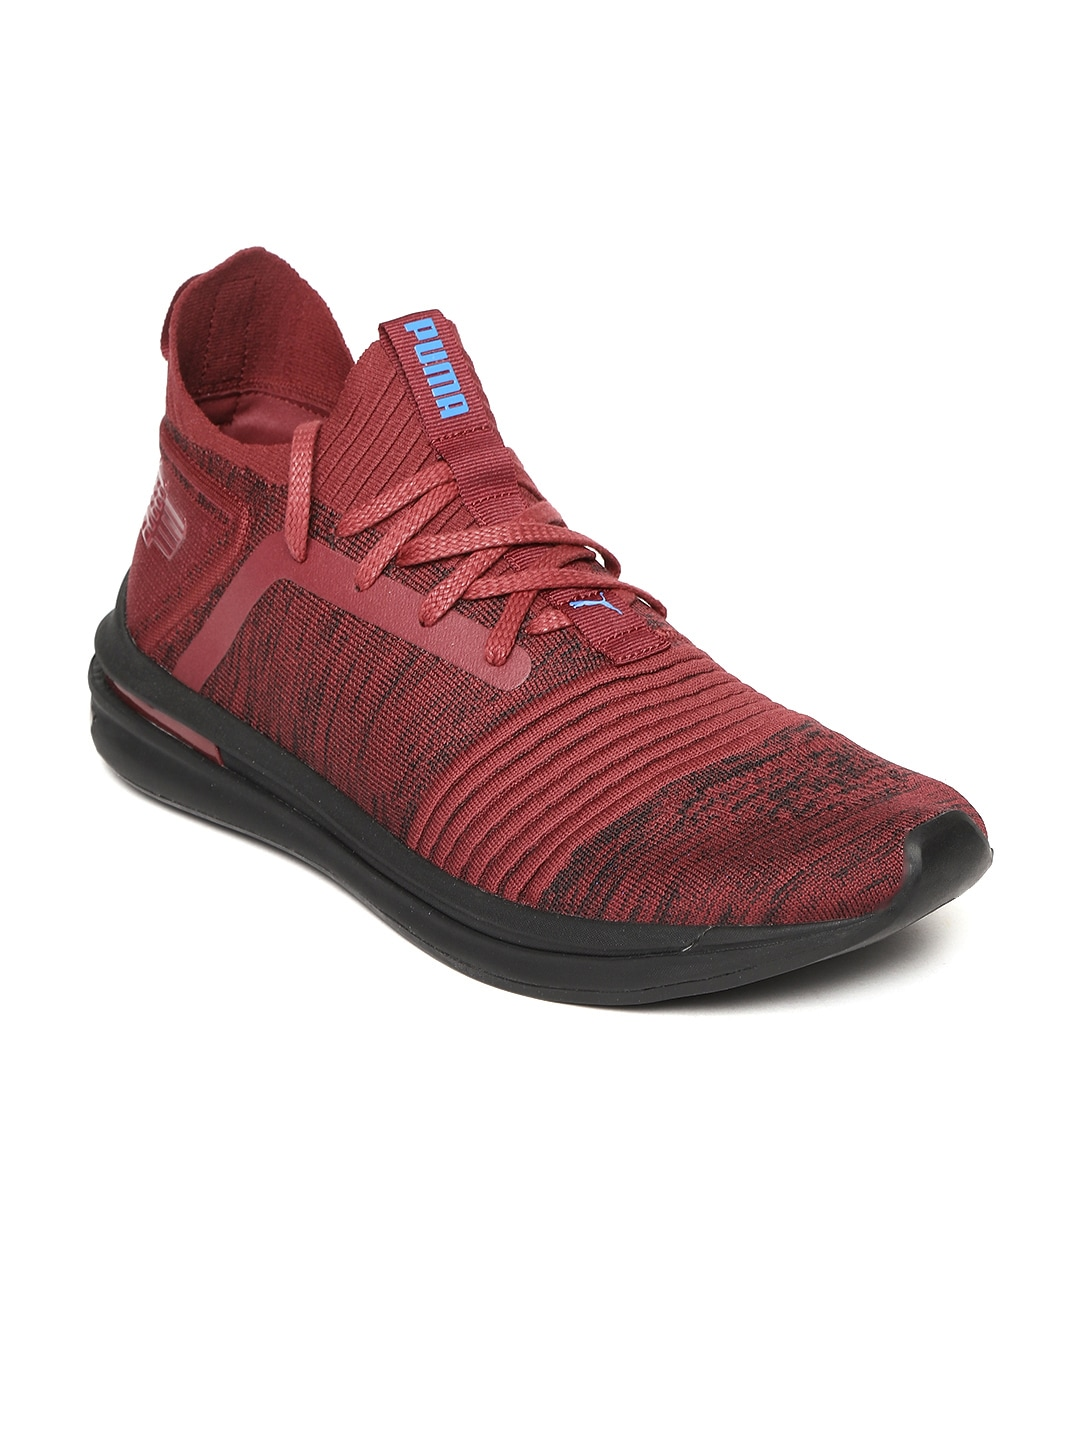 94aab3f0641 Running Shoes - Buy Running Shoes for Men   Women Online